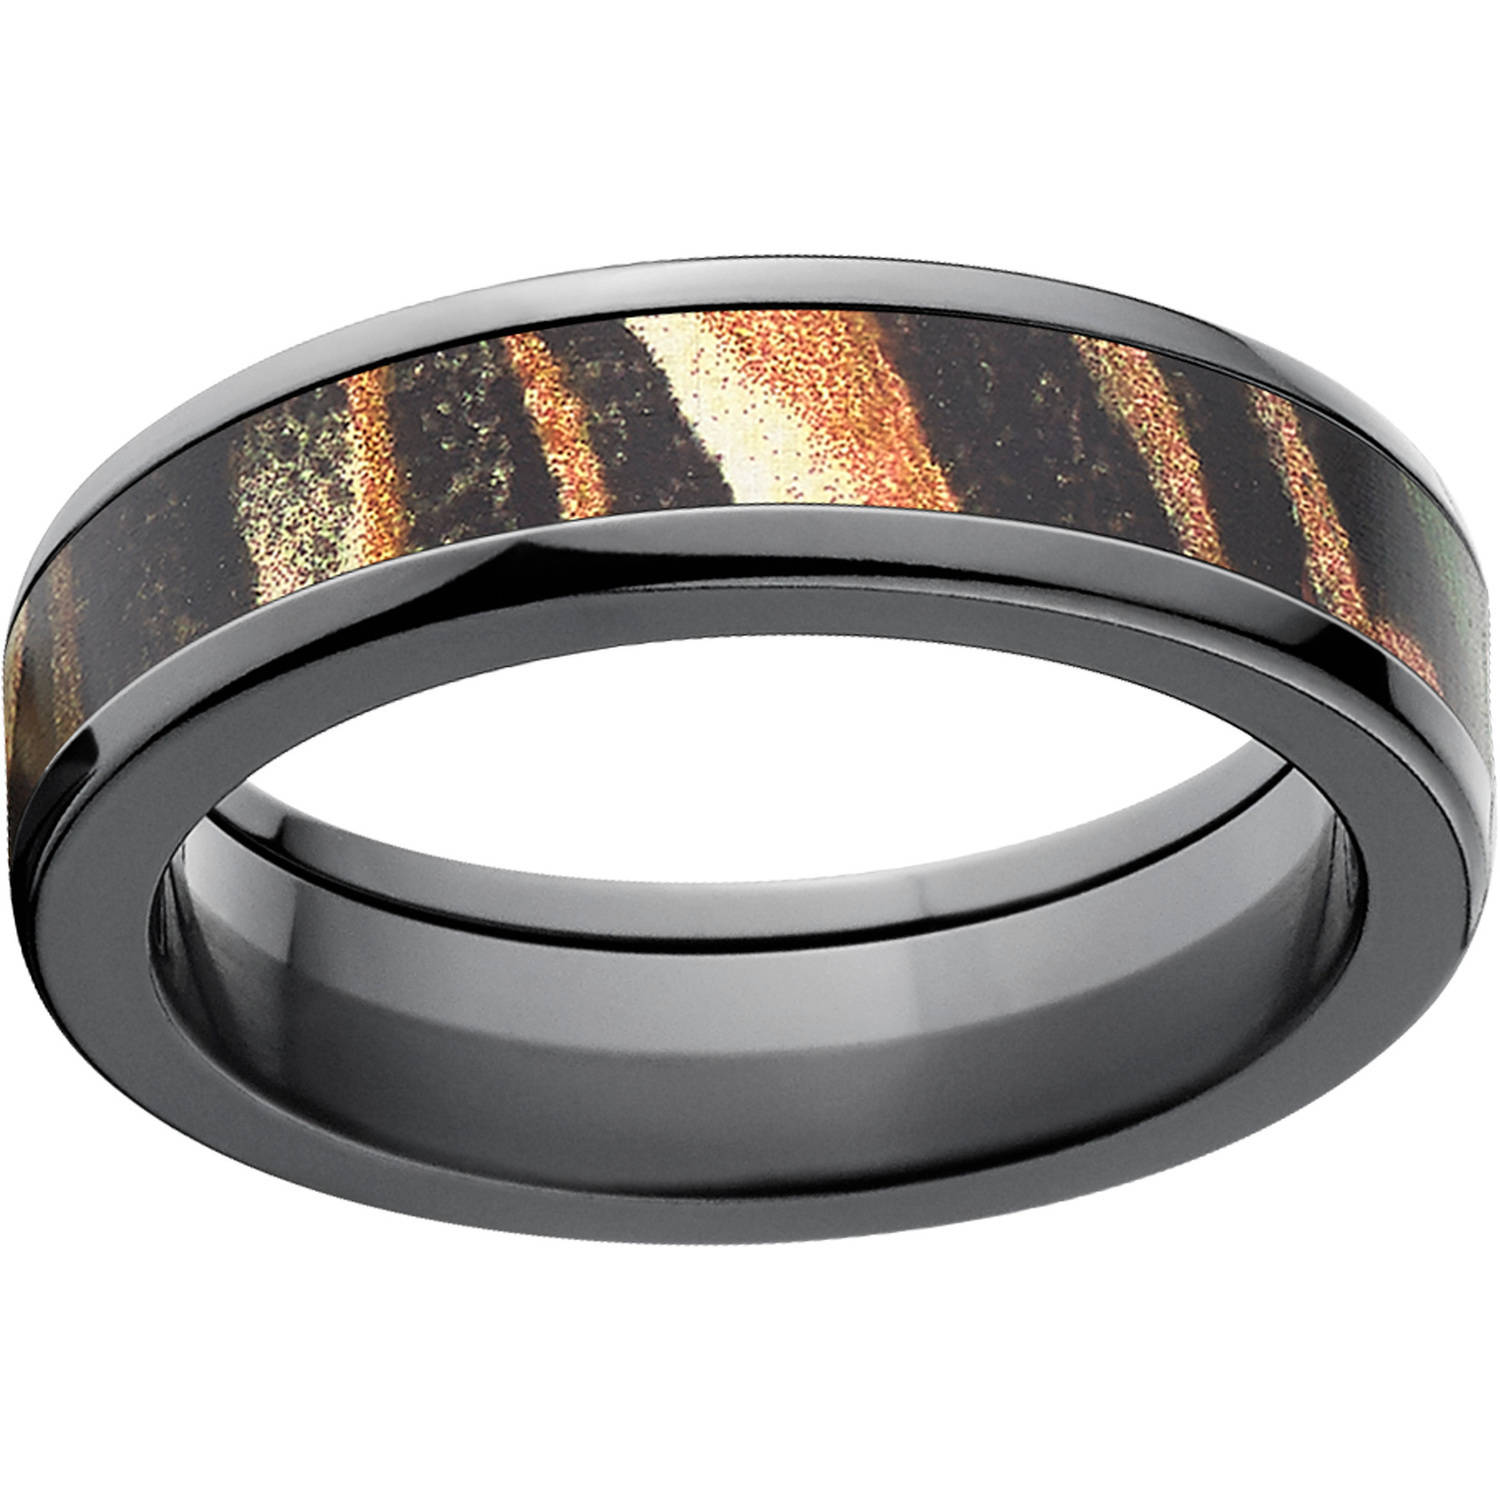 Mossy Oak Shadow Grass Men's Camo 6mm Black Zirconium Band with Polished Edges and Deluxe Comfort Fit